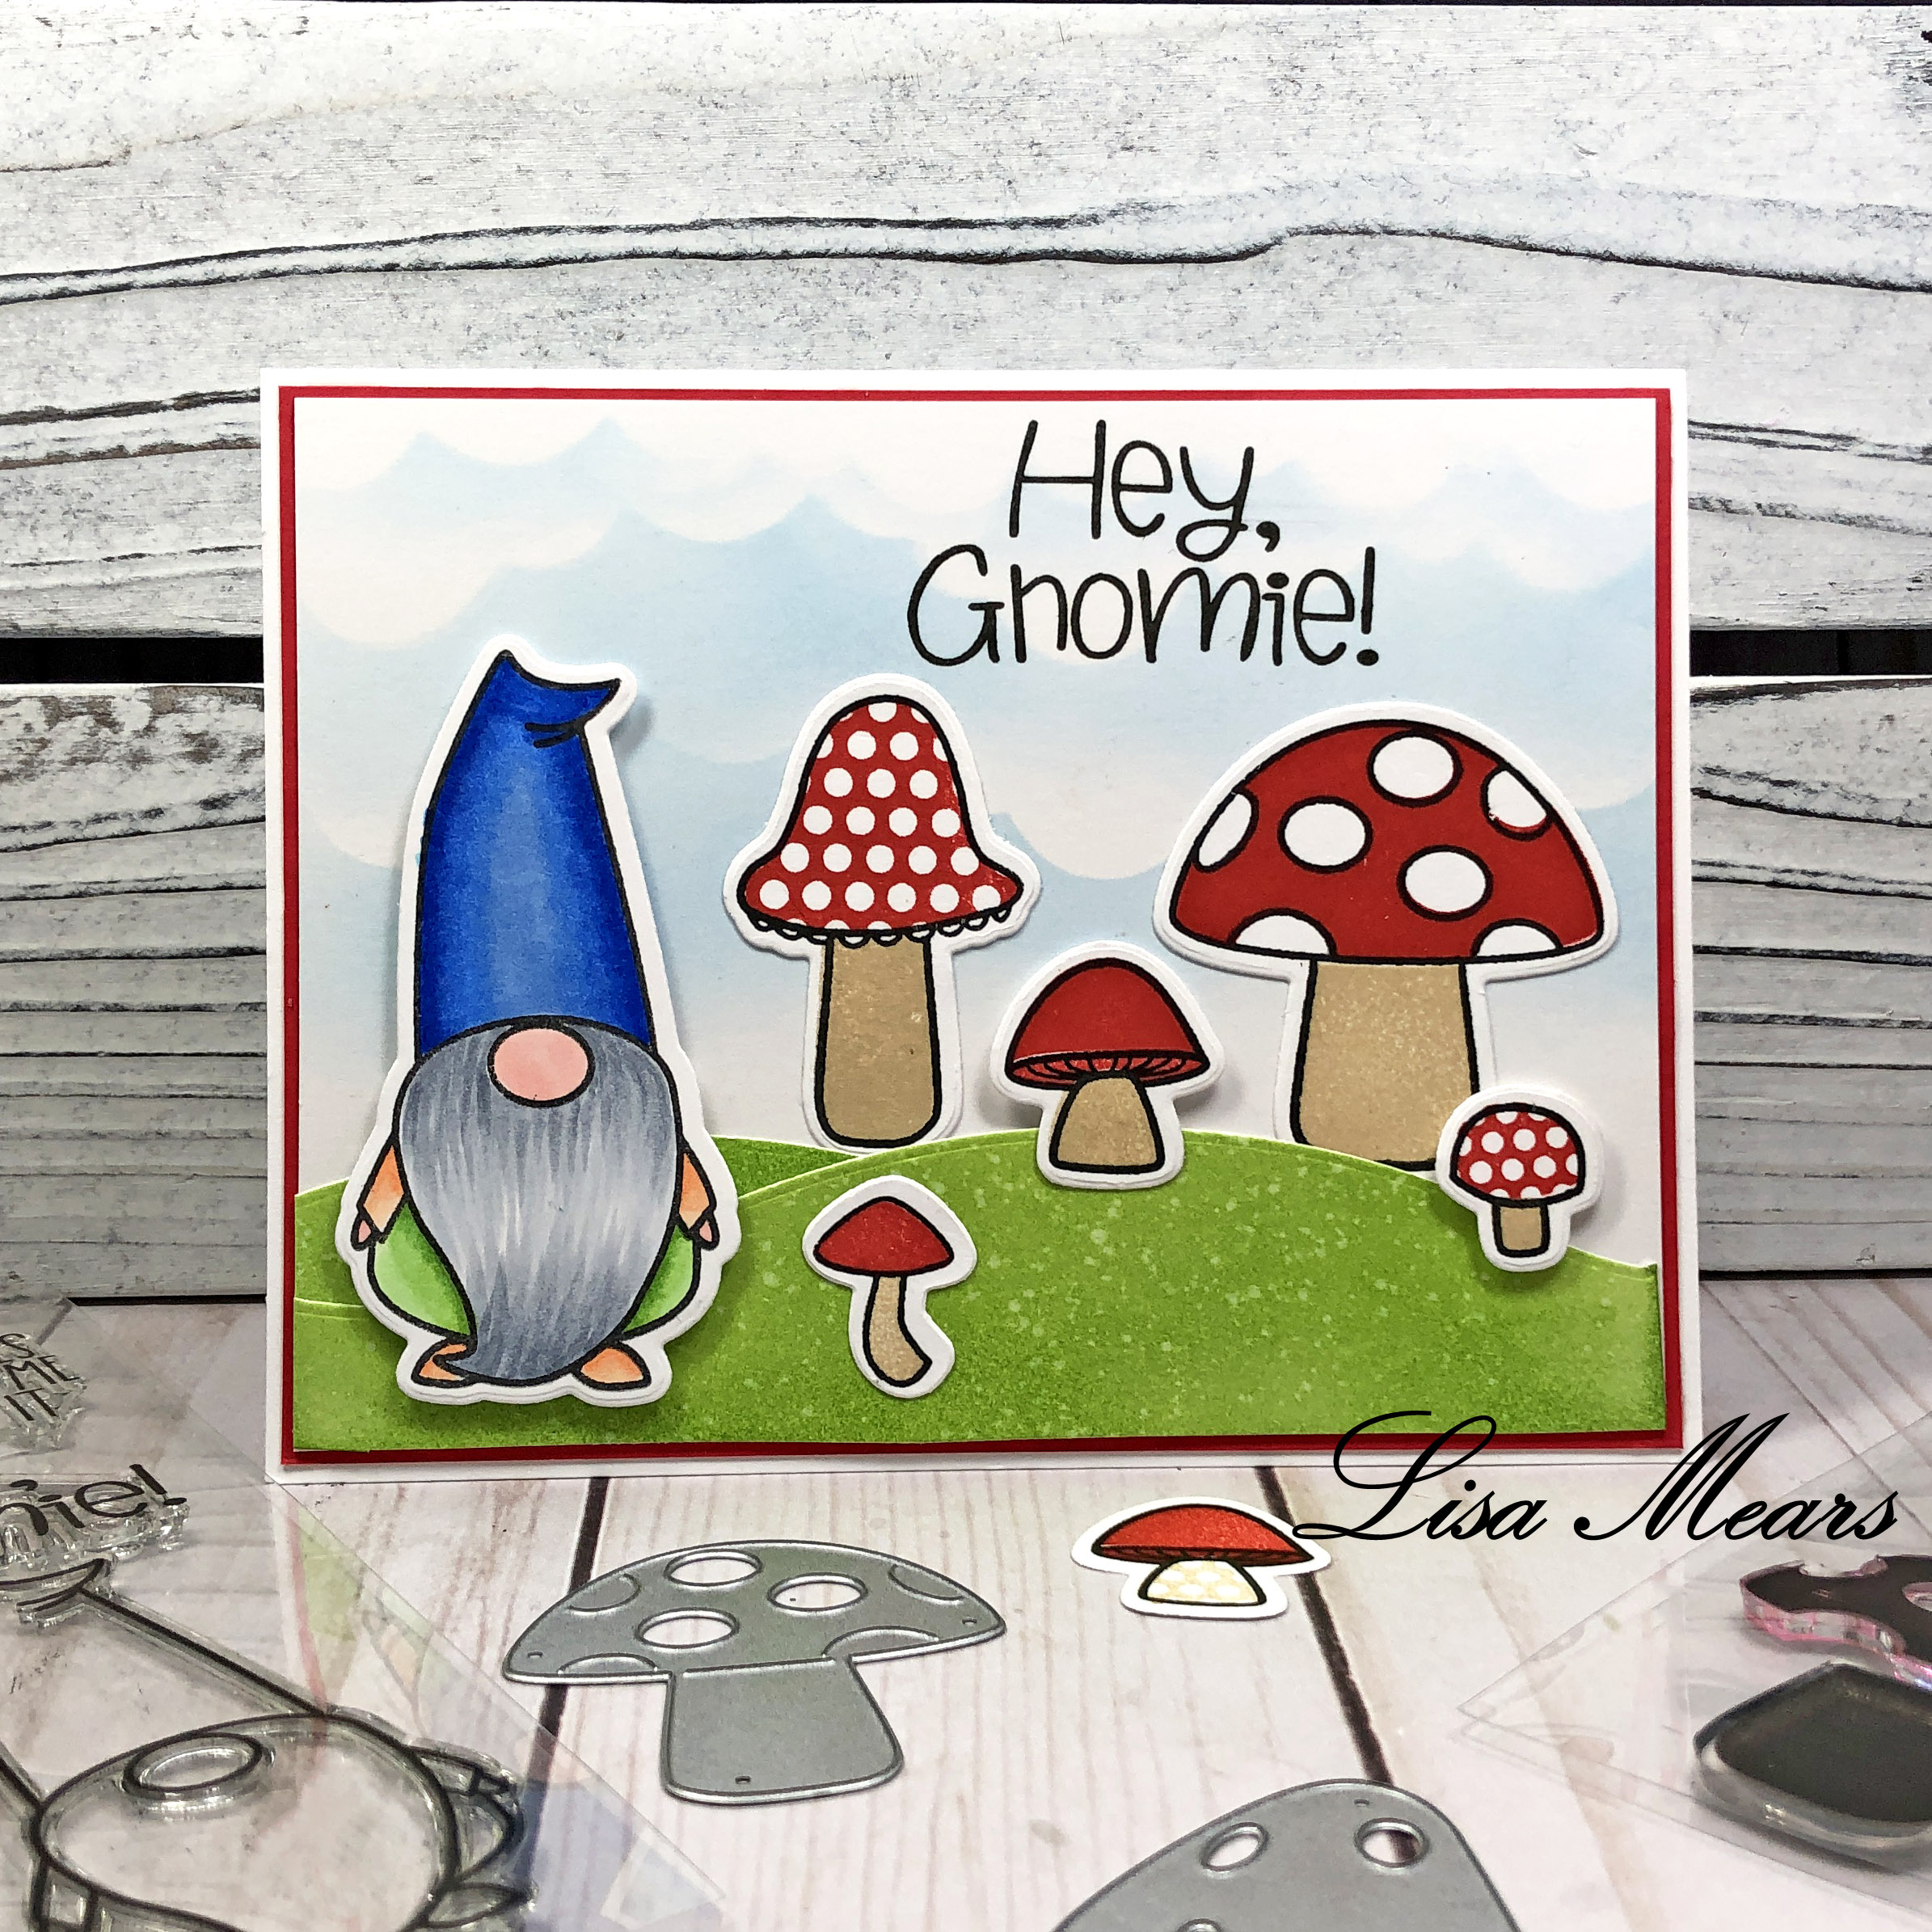 Gnome_with_Mushroom_LisaMears_Styled_cropped_Logo